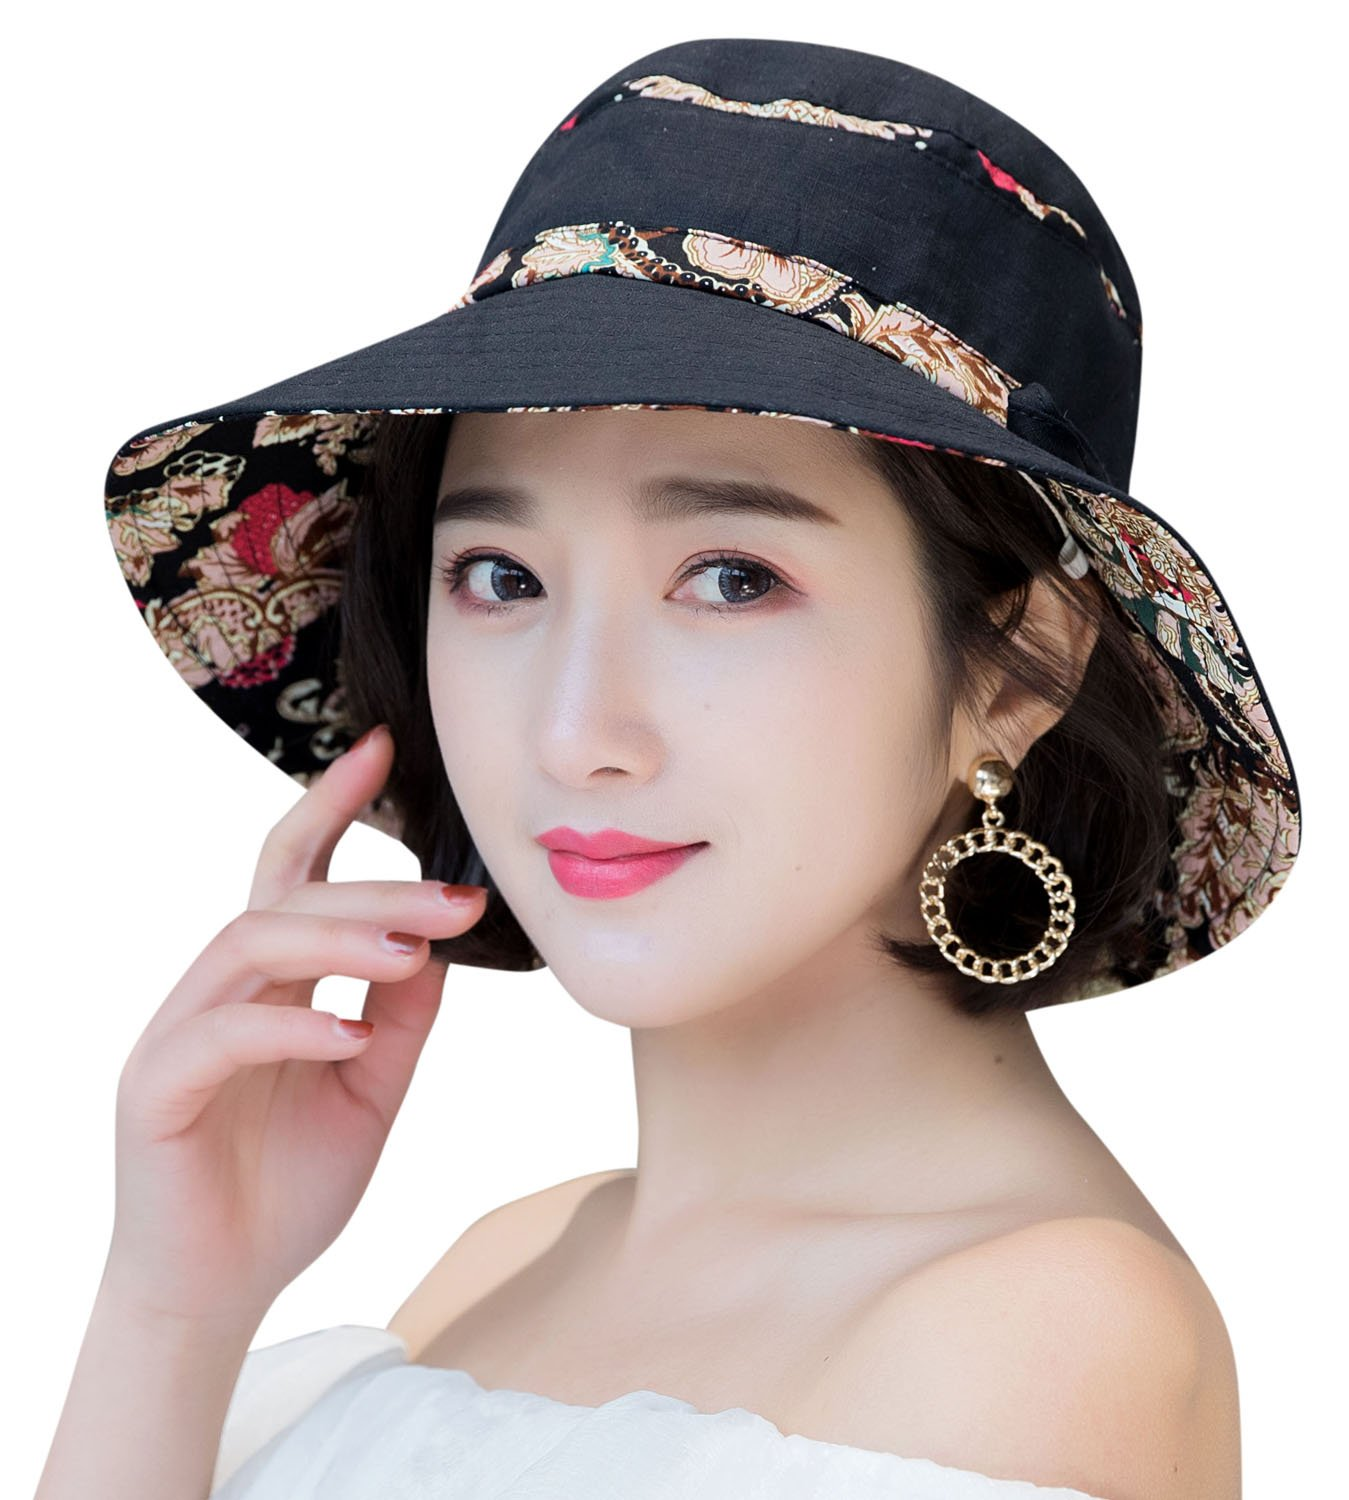 HindaWi Sun Hat Sun Hats for Women Packable Bucket Hat UV Protection Floppy Beach Womens Foldable Caps